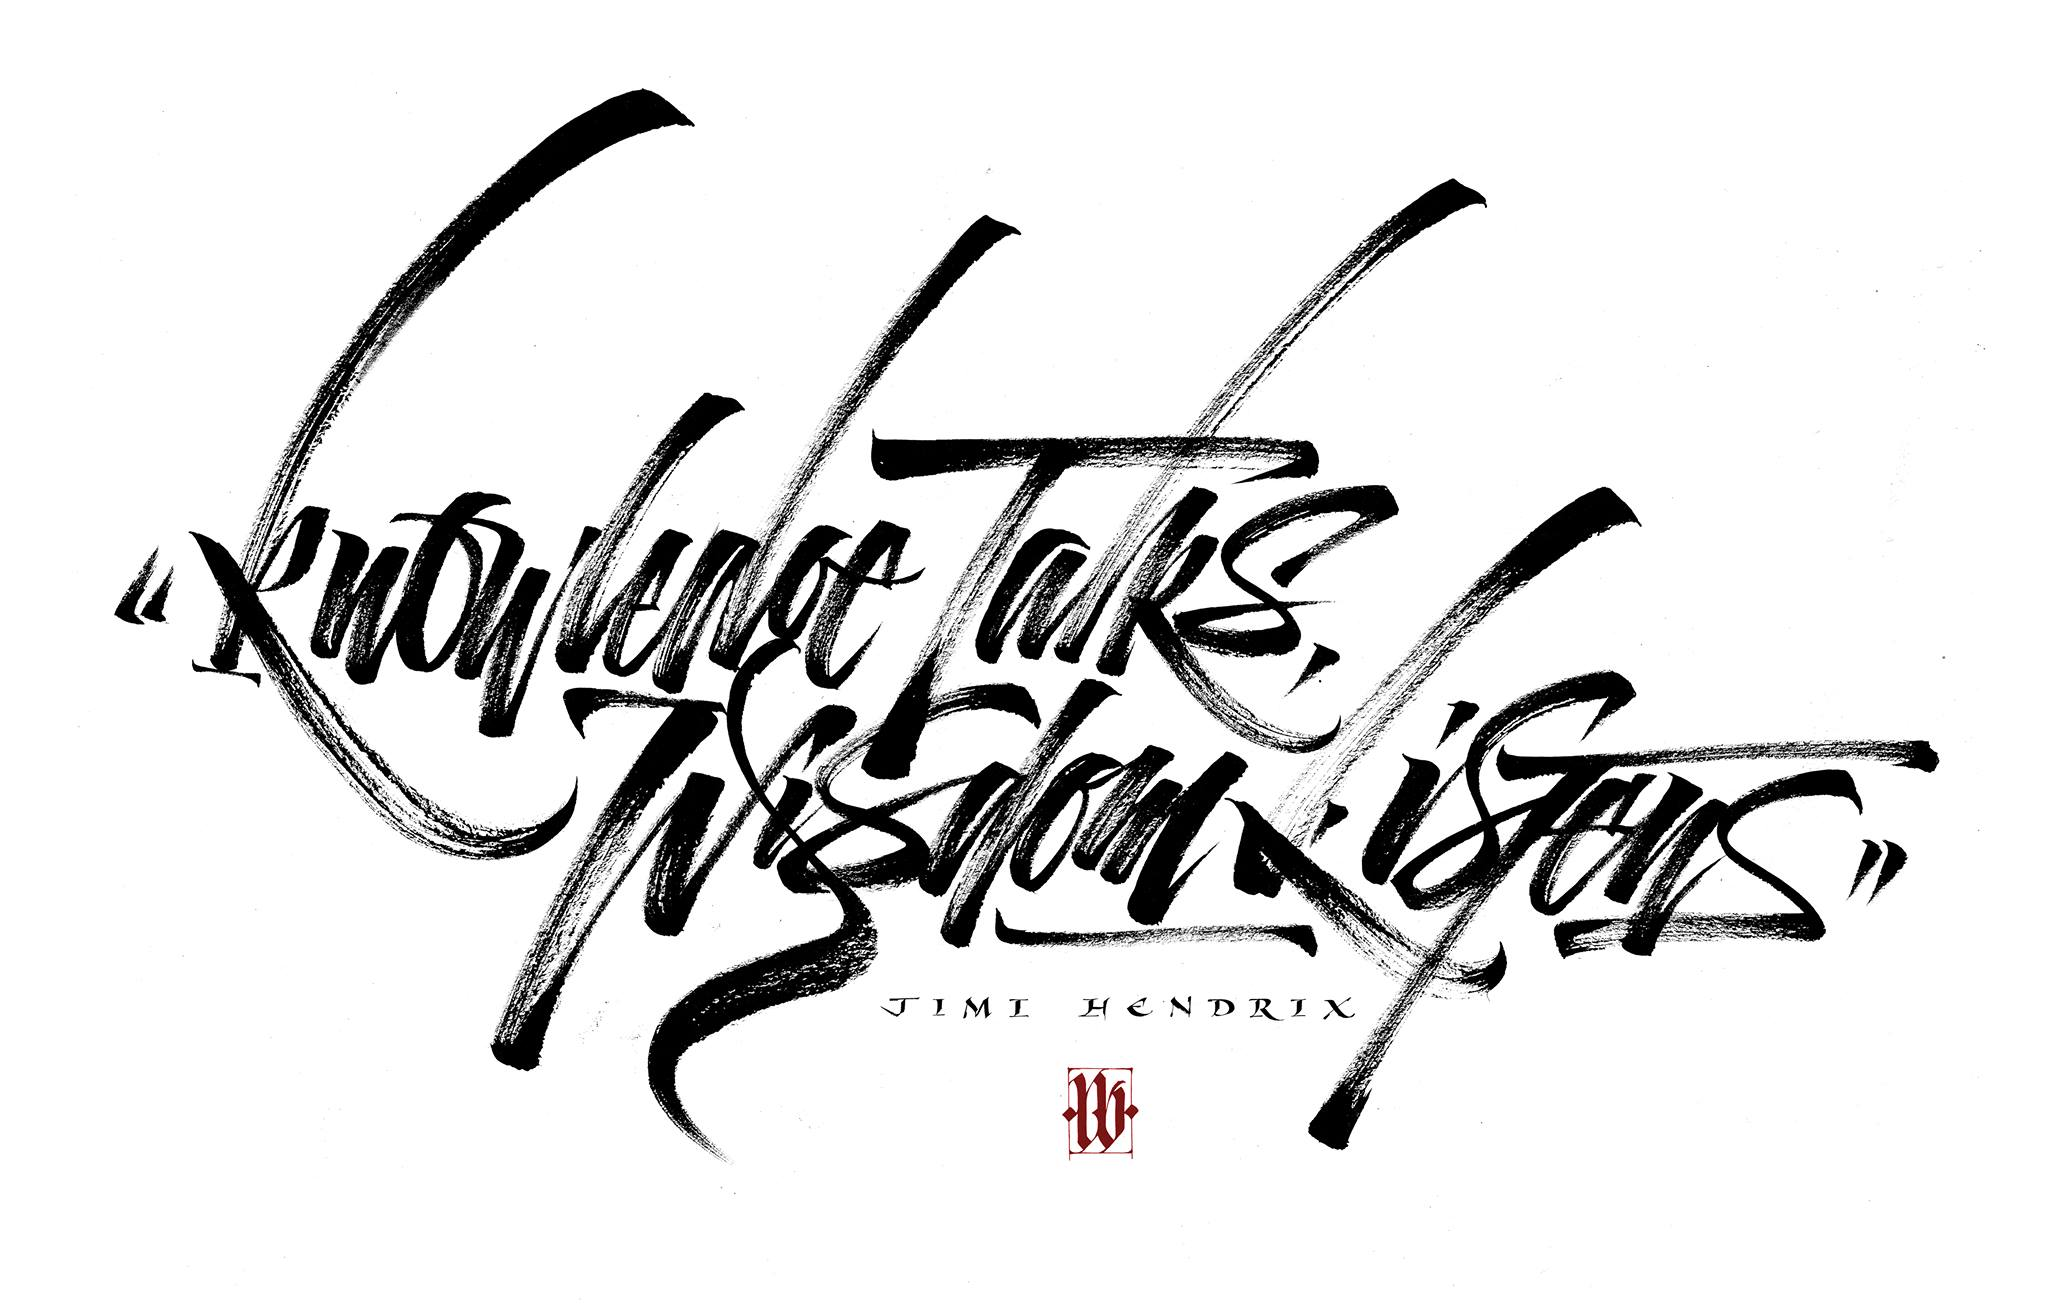 Calligraphy by Luca Barcellona